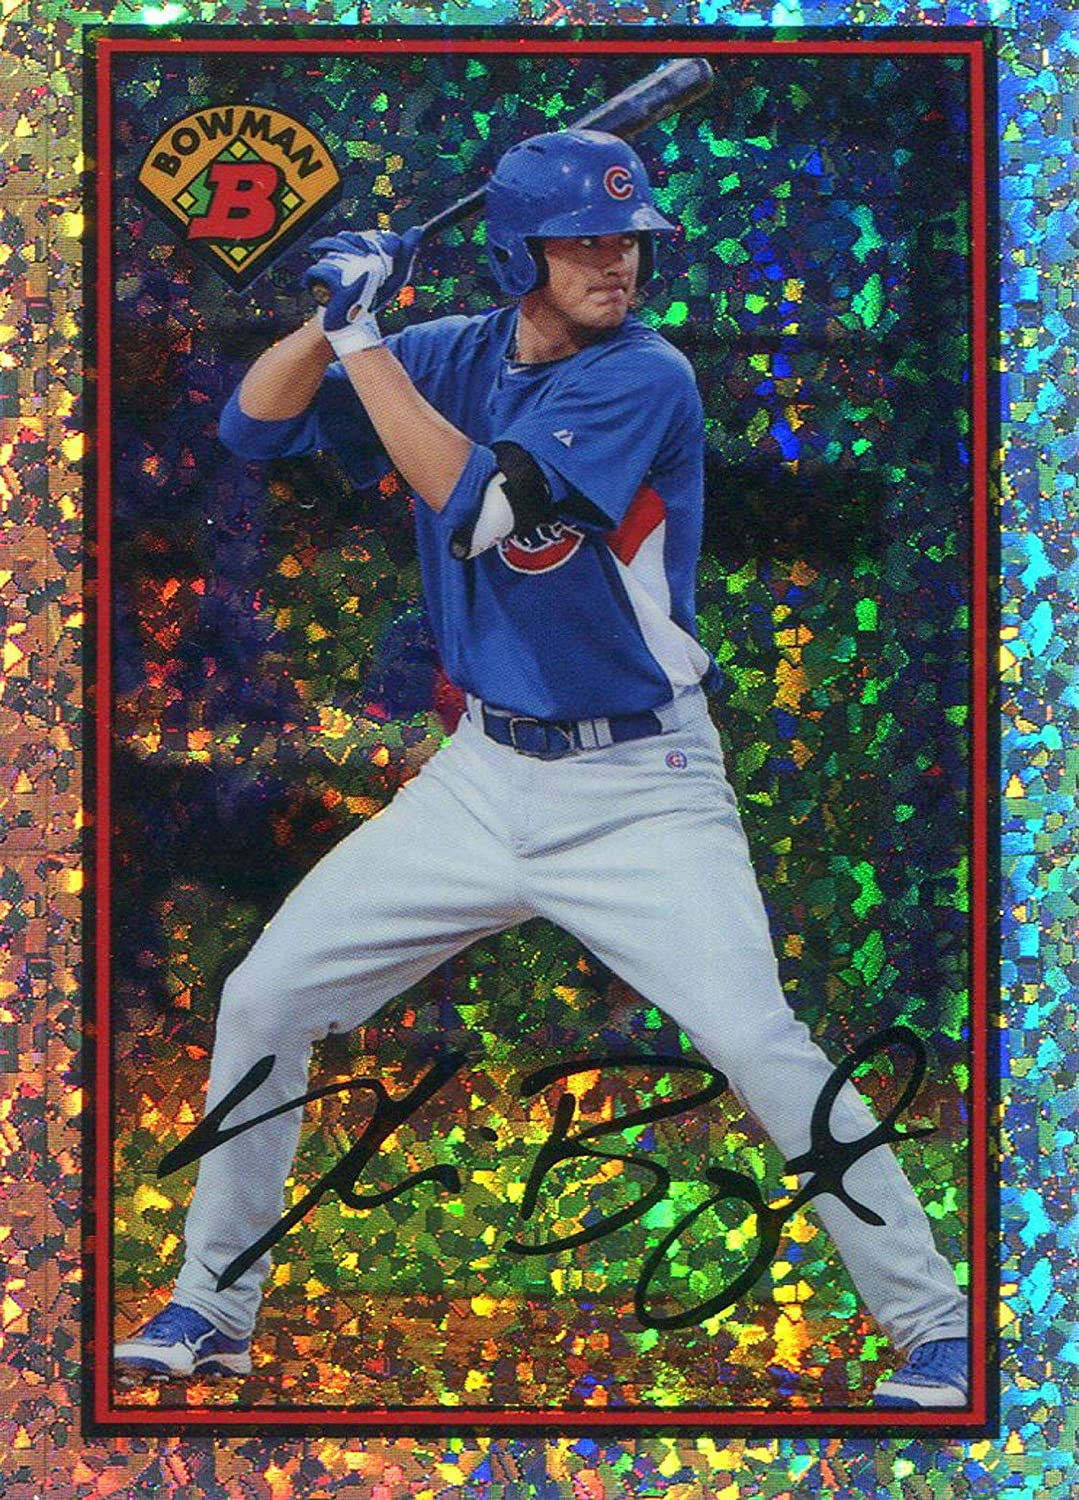 Kris Bryant Unsigned 2014 Bowman - Slabbed Card Baseball Rookie Mail order Large-scale sale cheap